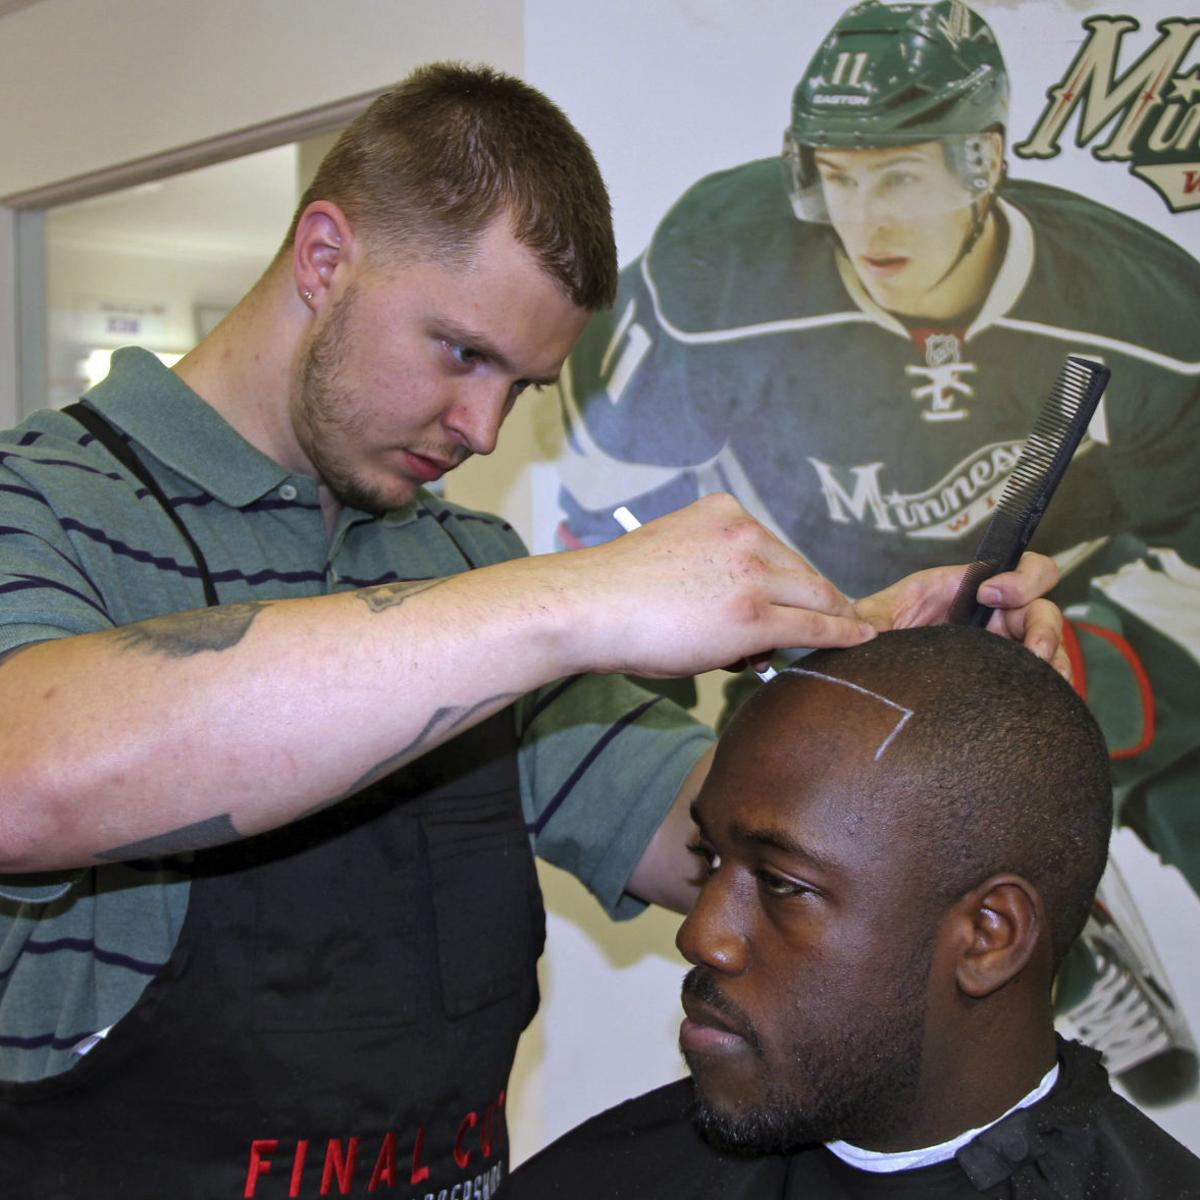 Haircutting Taboos Like Black Men Avoiding White Barbers Defied Daily At Final Cut State And Regional Lacrossetribune Com